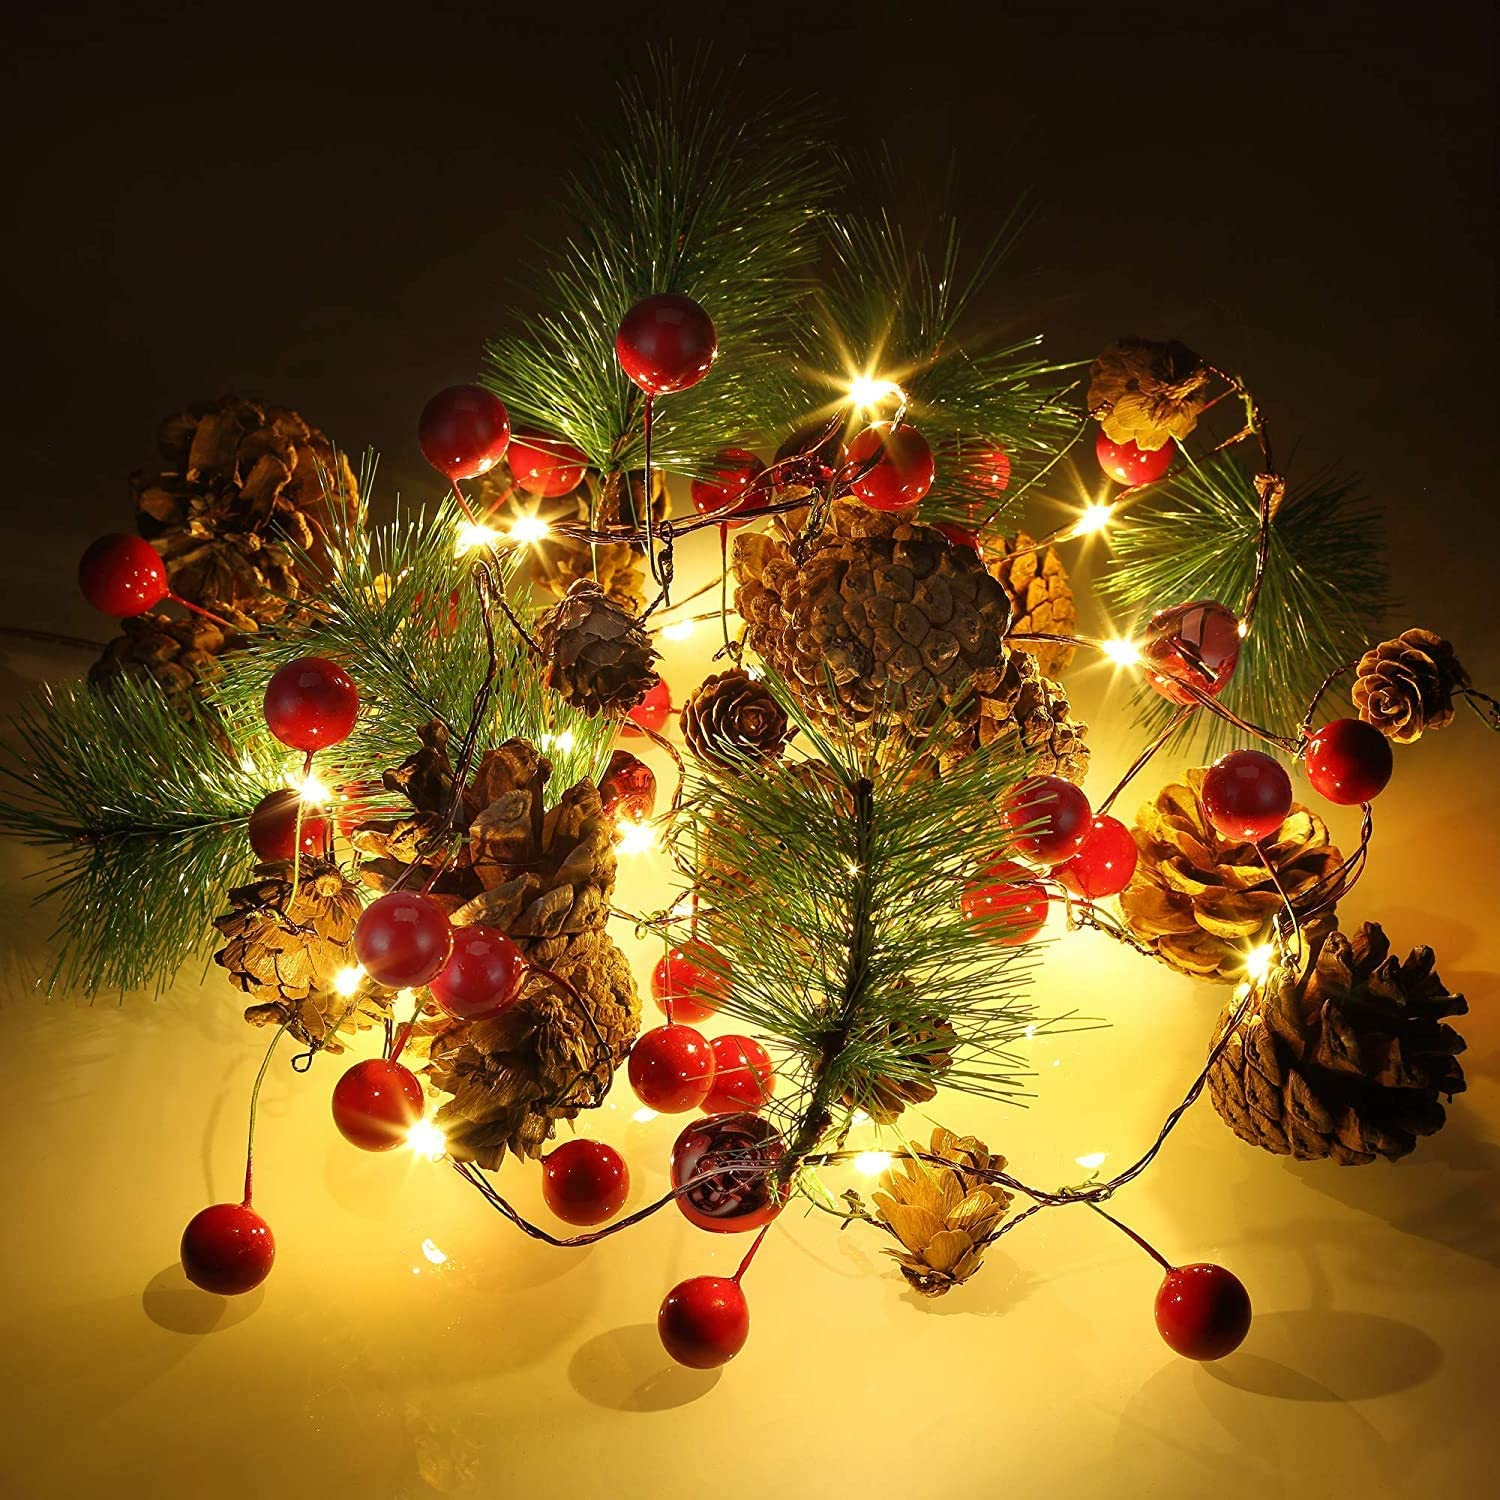 6.5FT Christmas Garland with Lights for Fireplace Mantle Home Christmas Decorations - Red Berry Pine Cone Xmas Lighted Garland String 20 LED Battery Operated Indoor Outdoor Holiday New Year Decor